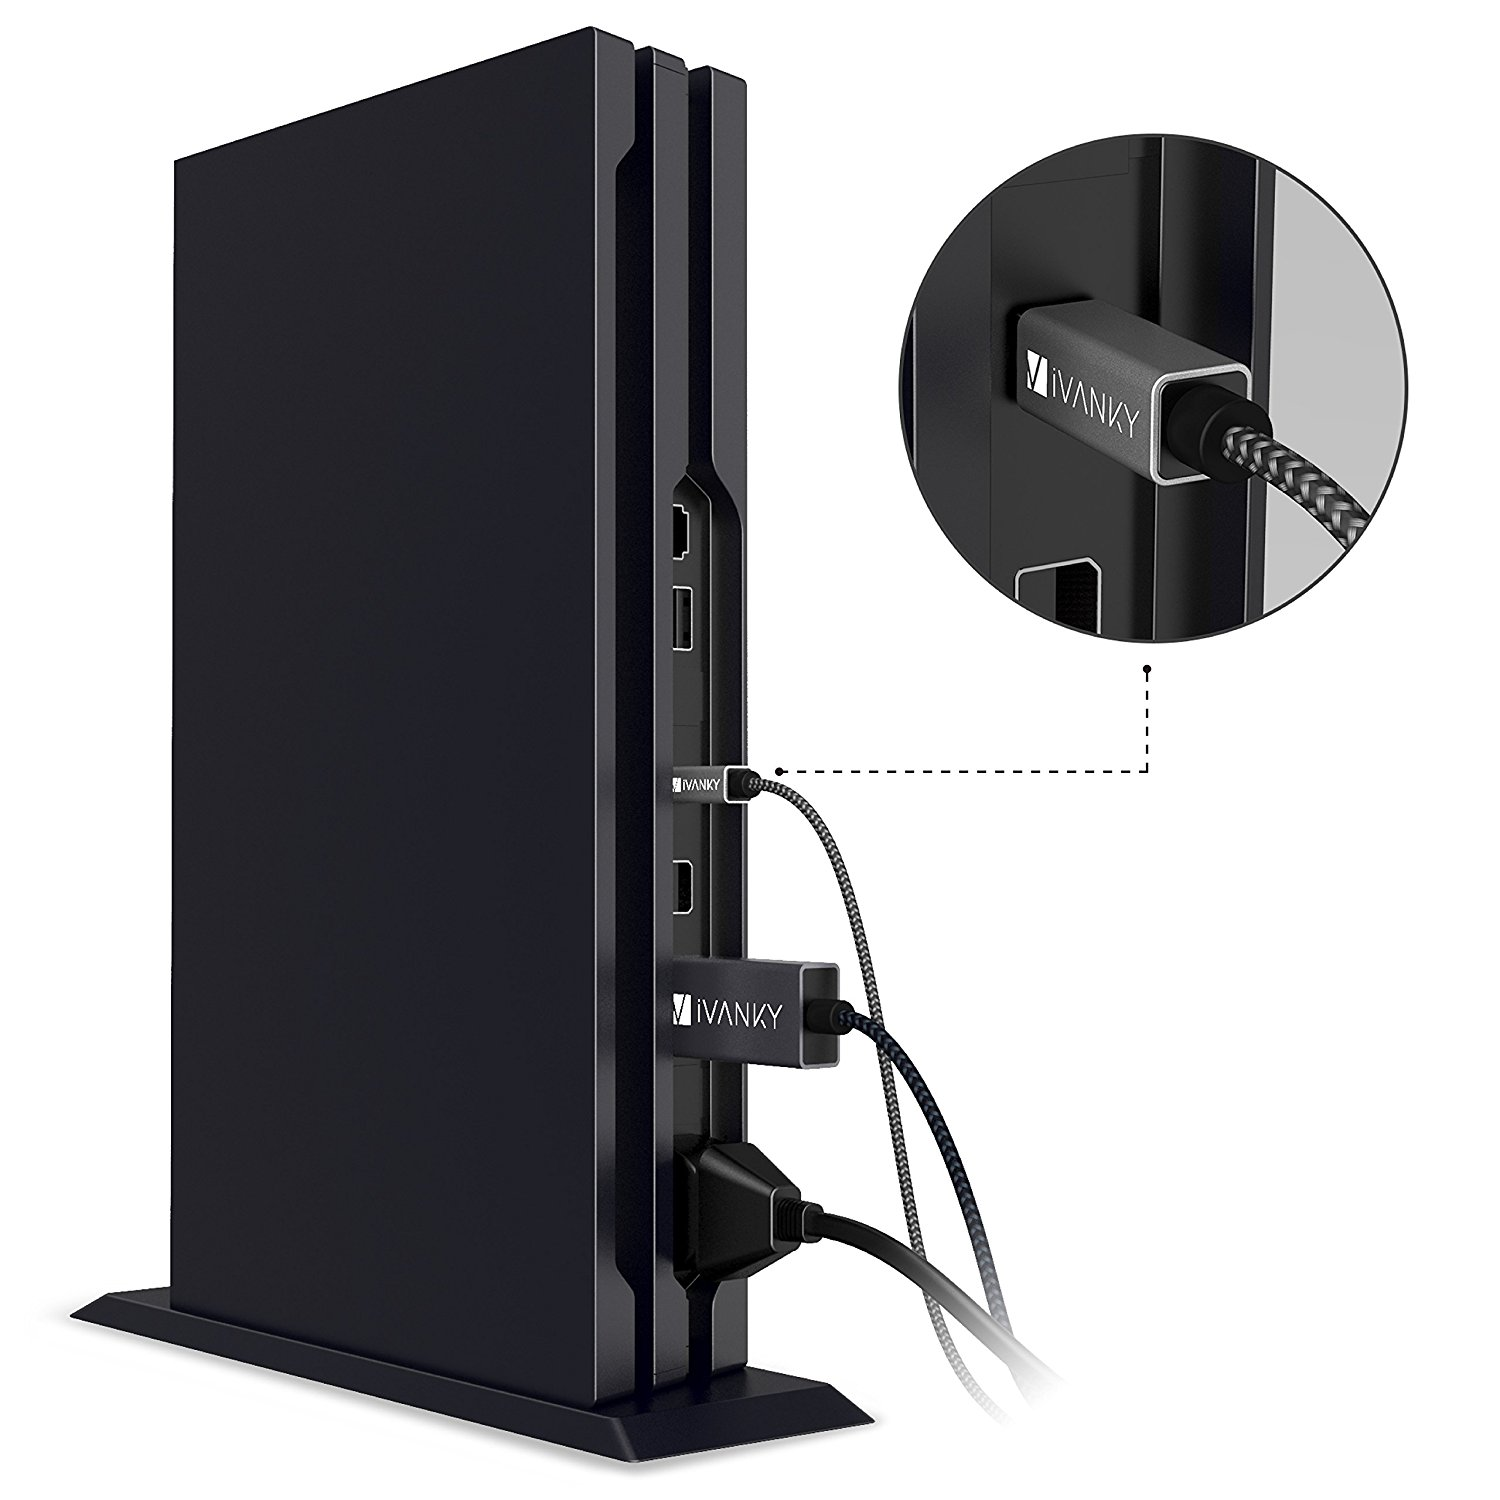 connecting ps4 to computer speakers